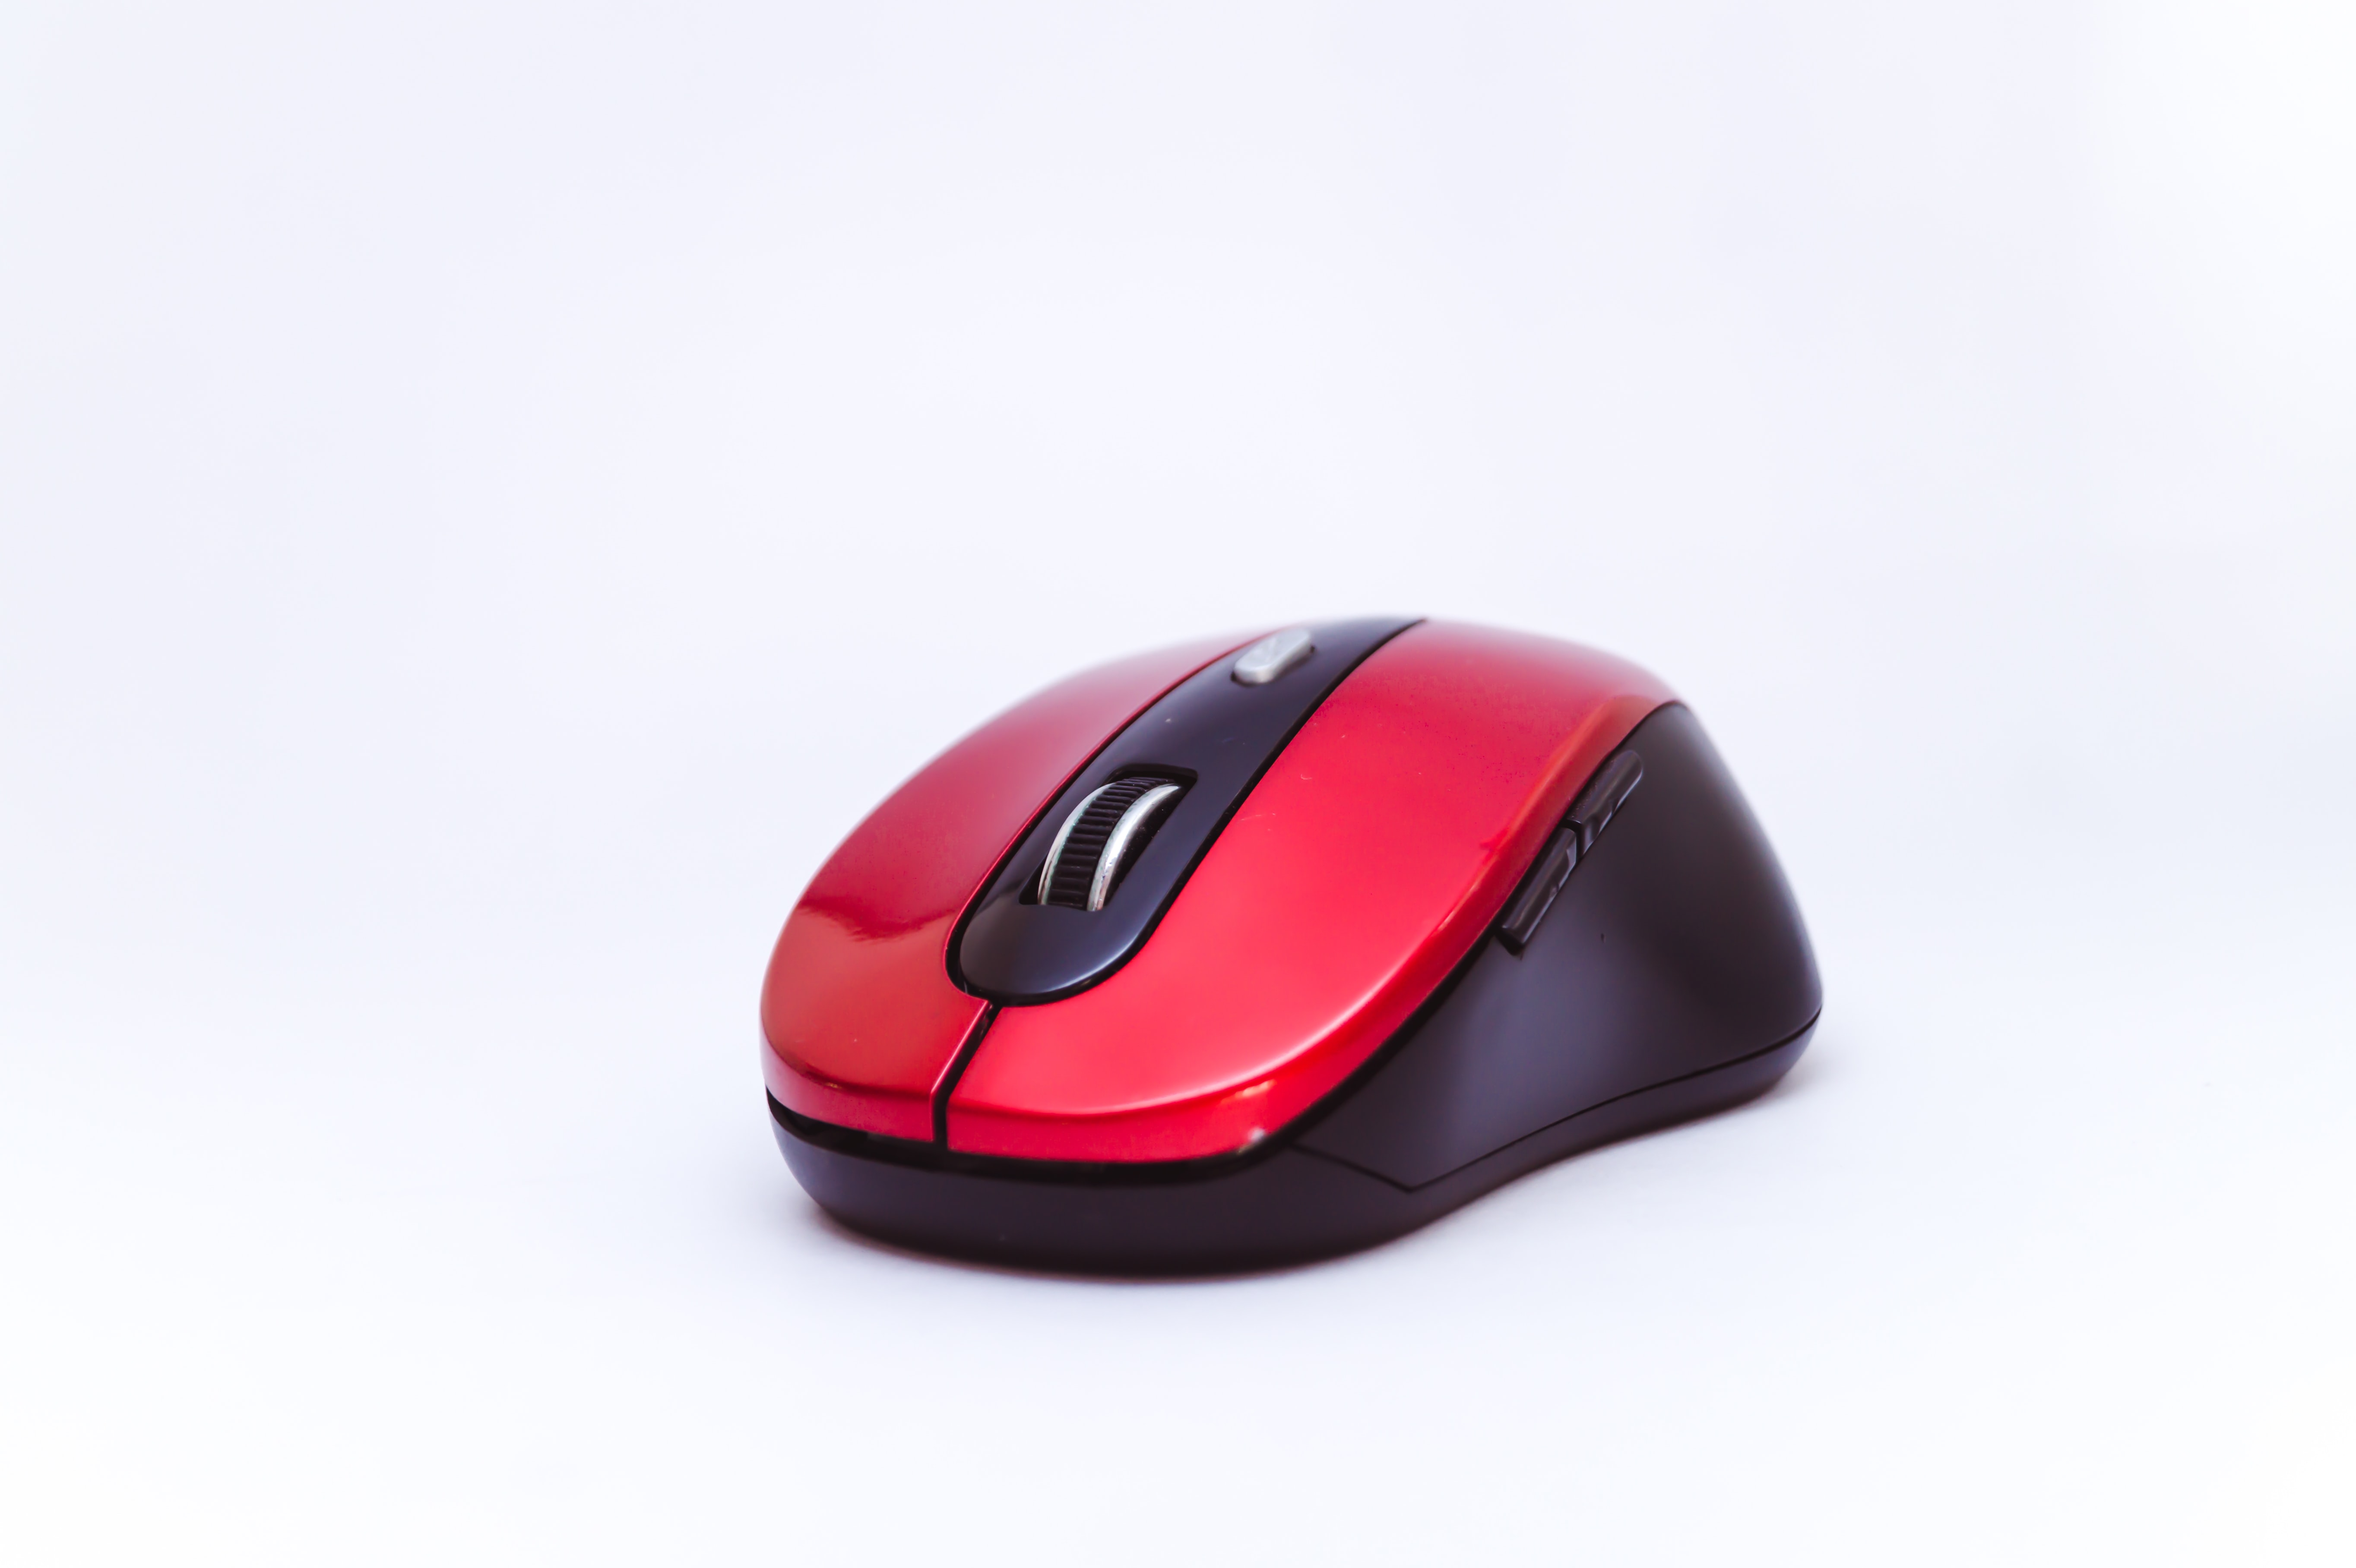 black and red cordless computer mouse